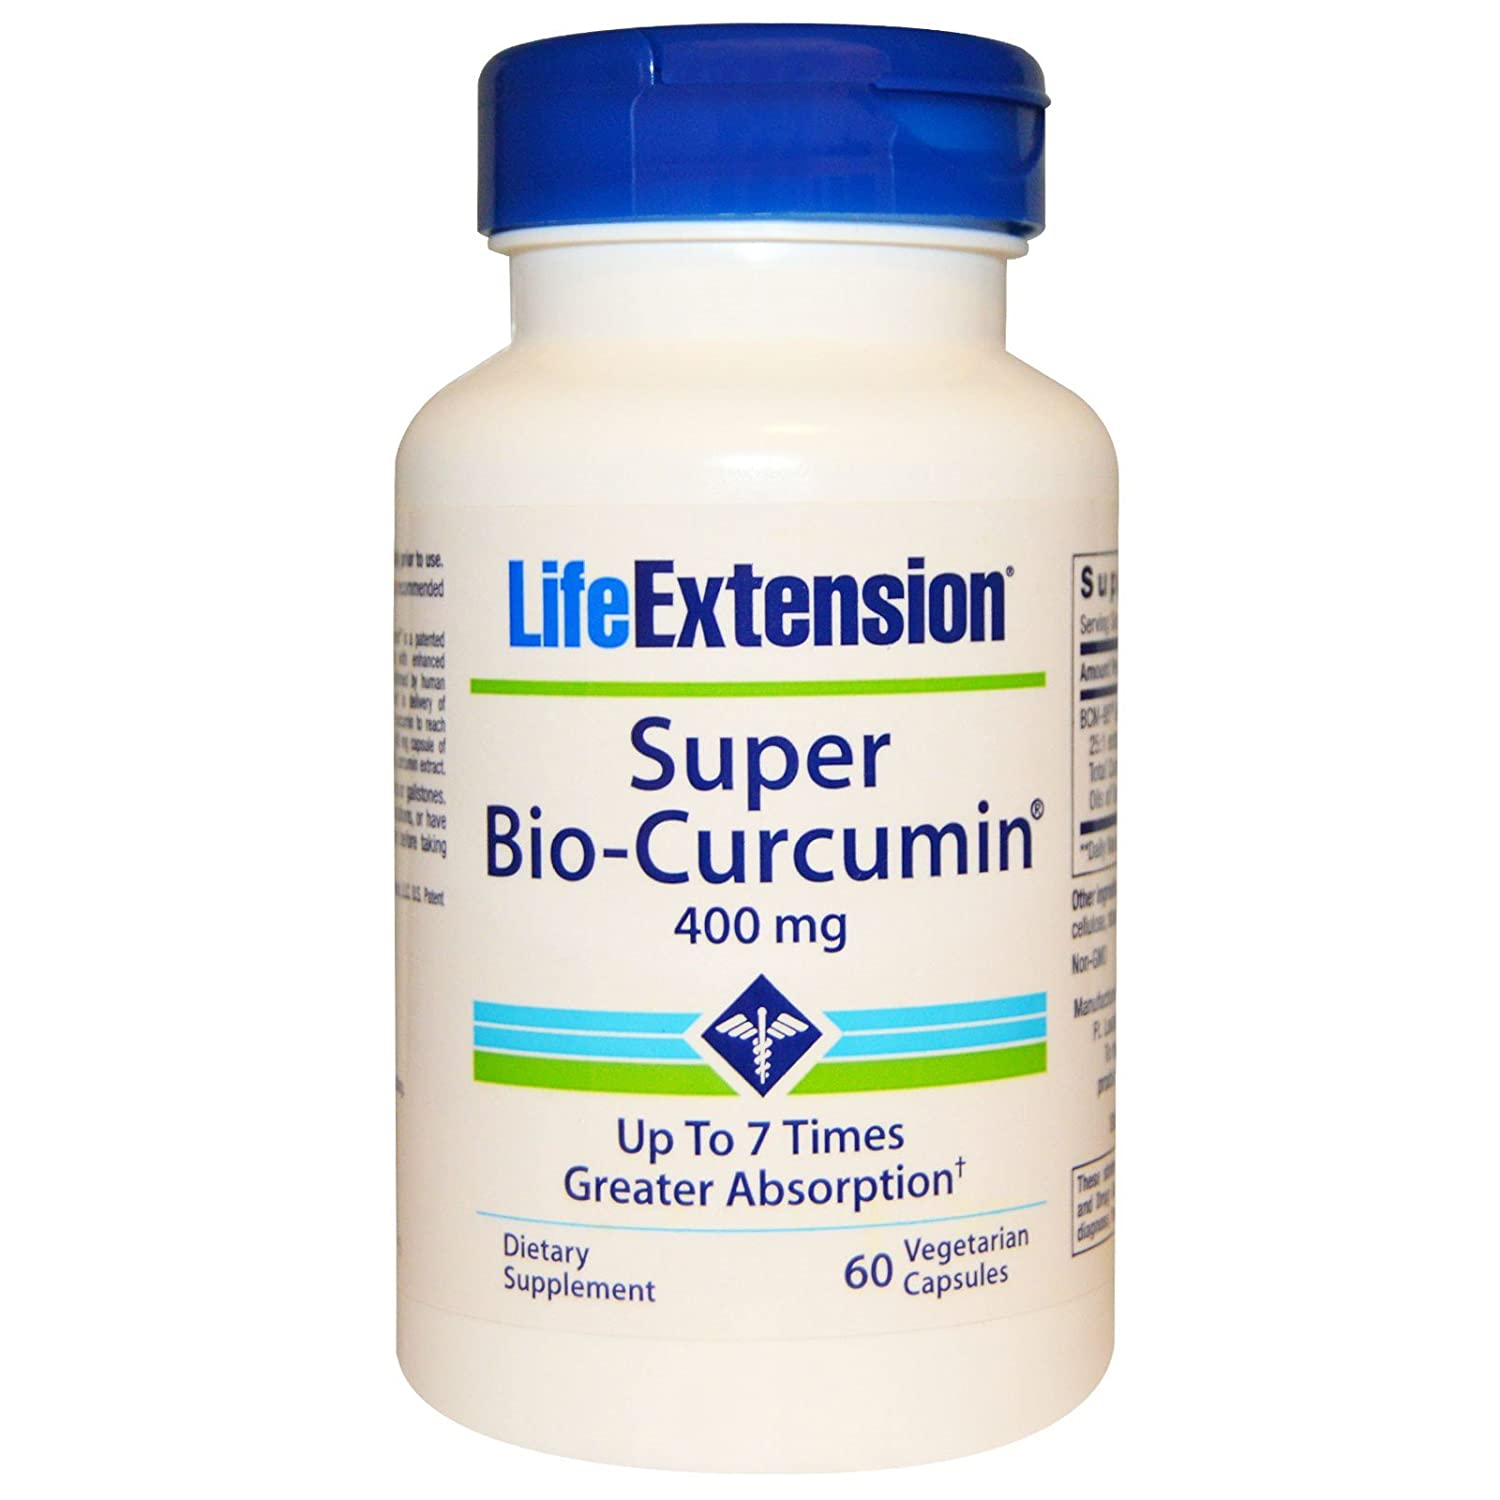 Amazon.com: Life Extension Super Bio-Curcumin 400 mg 60 Veggie Caps , Shaker Bottle assorted colors 20 oz: Health & Personal Care